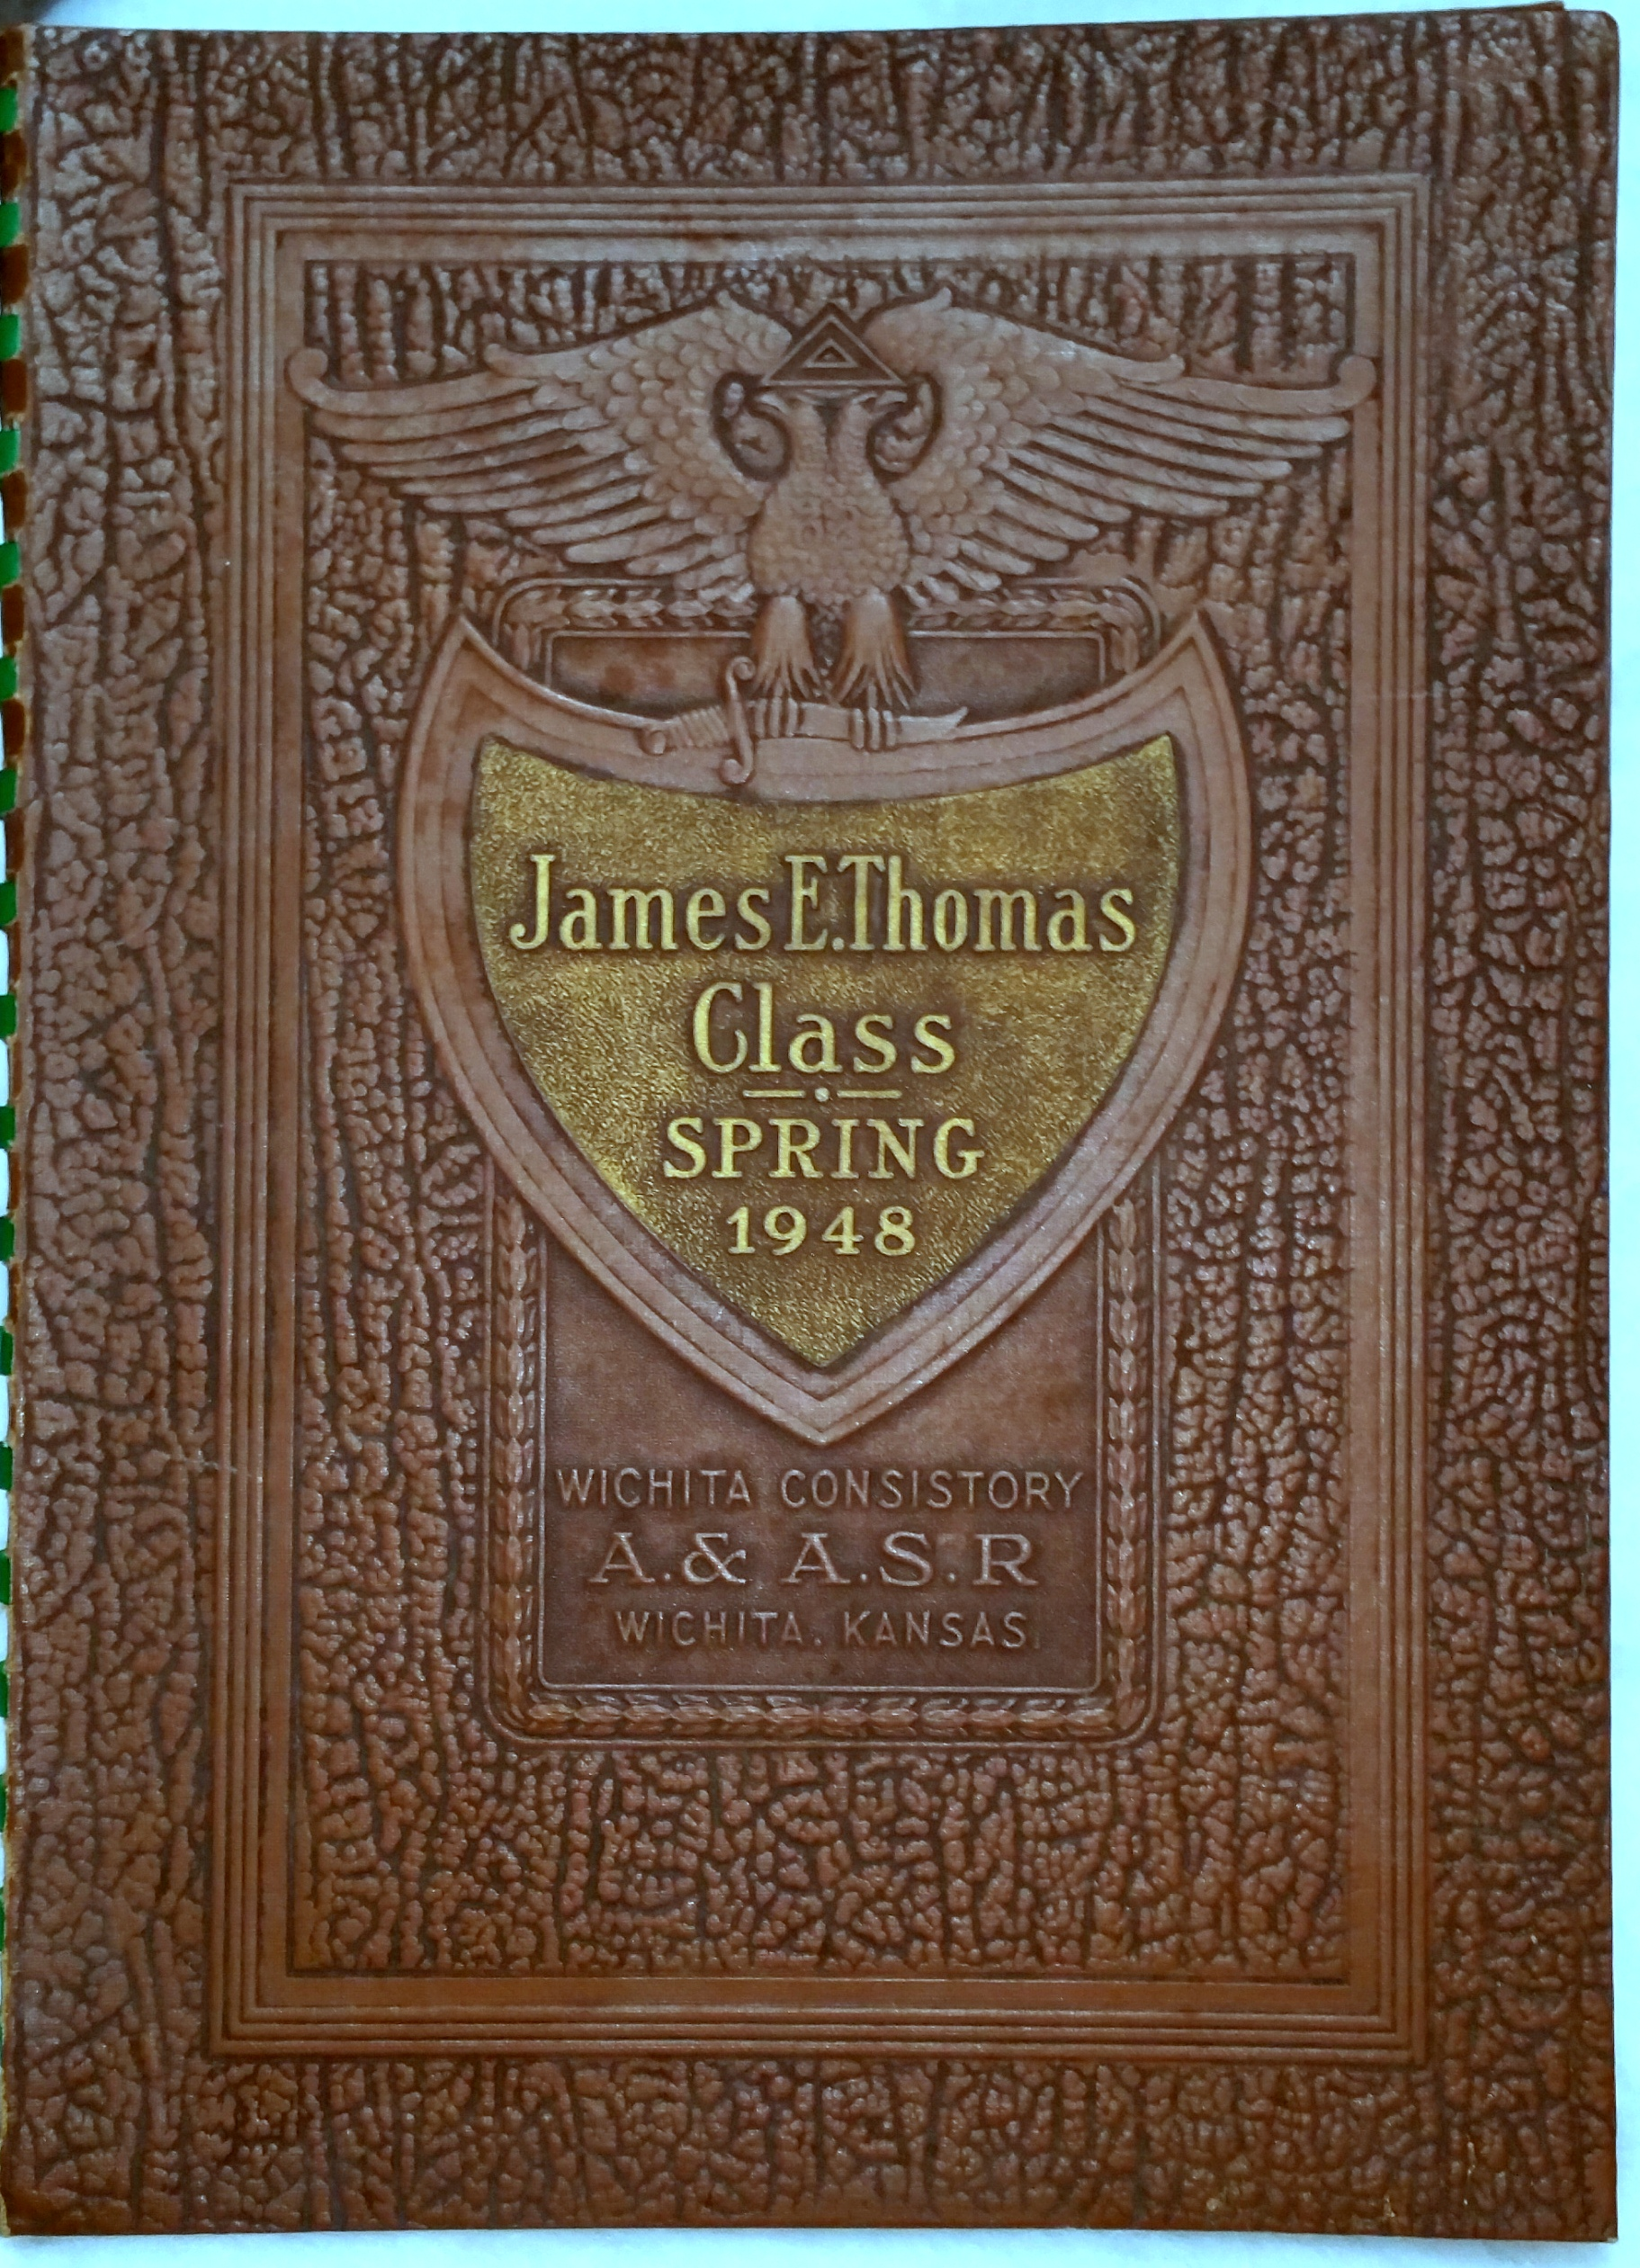 Image for James E. Thomas Class, Advanced Spring Class 1948, Ancient and Accepted Scottish Rite